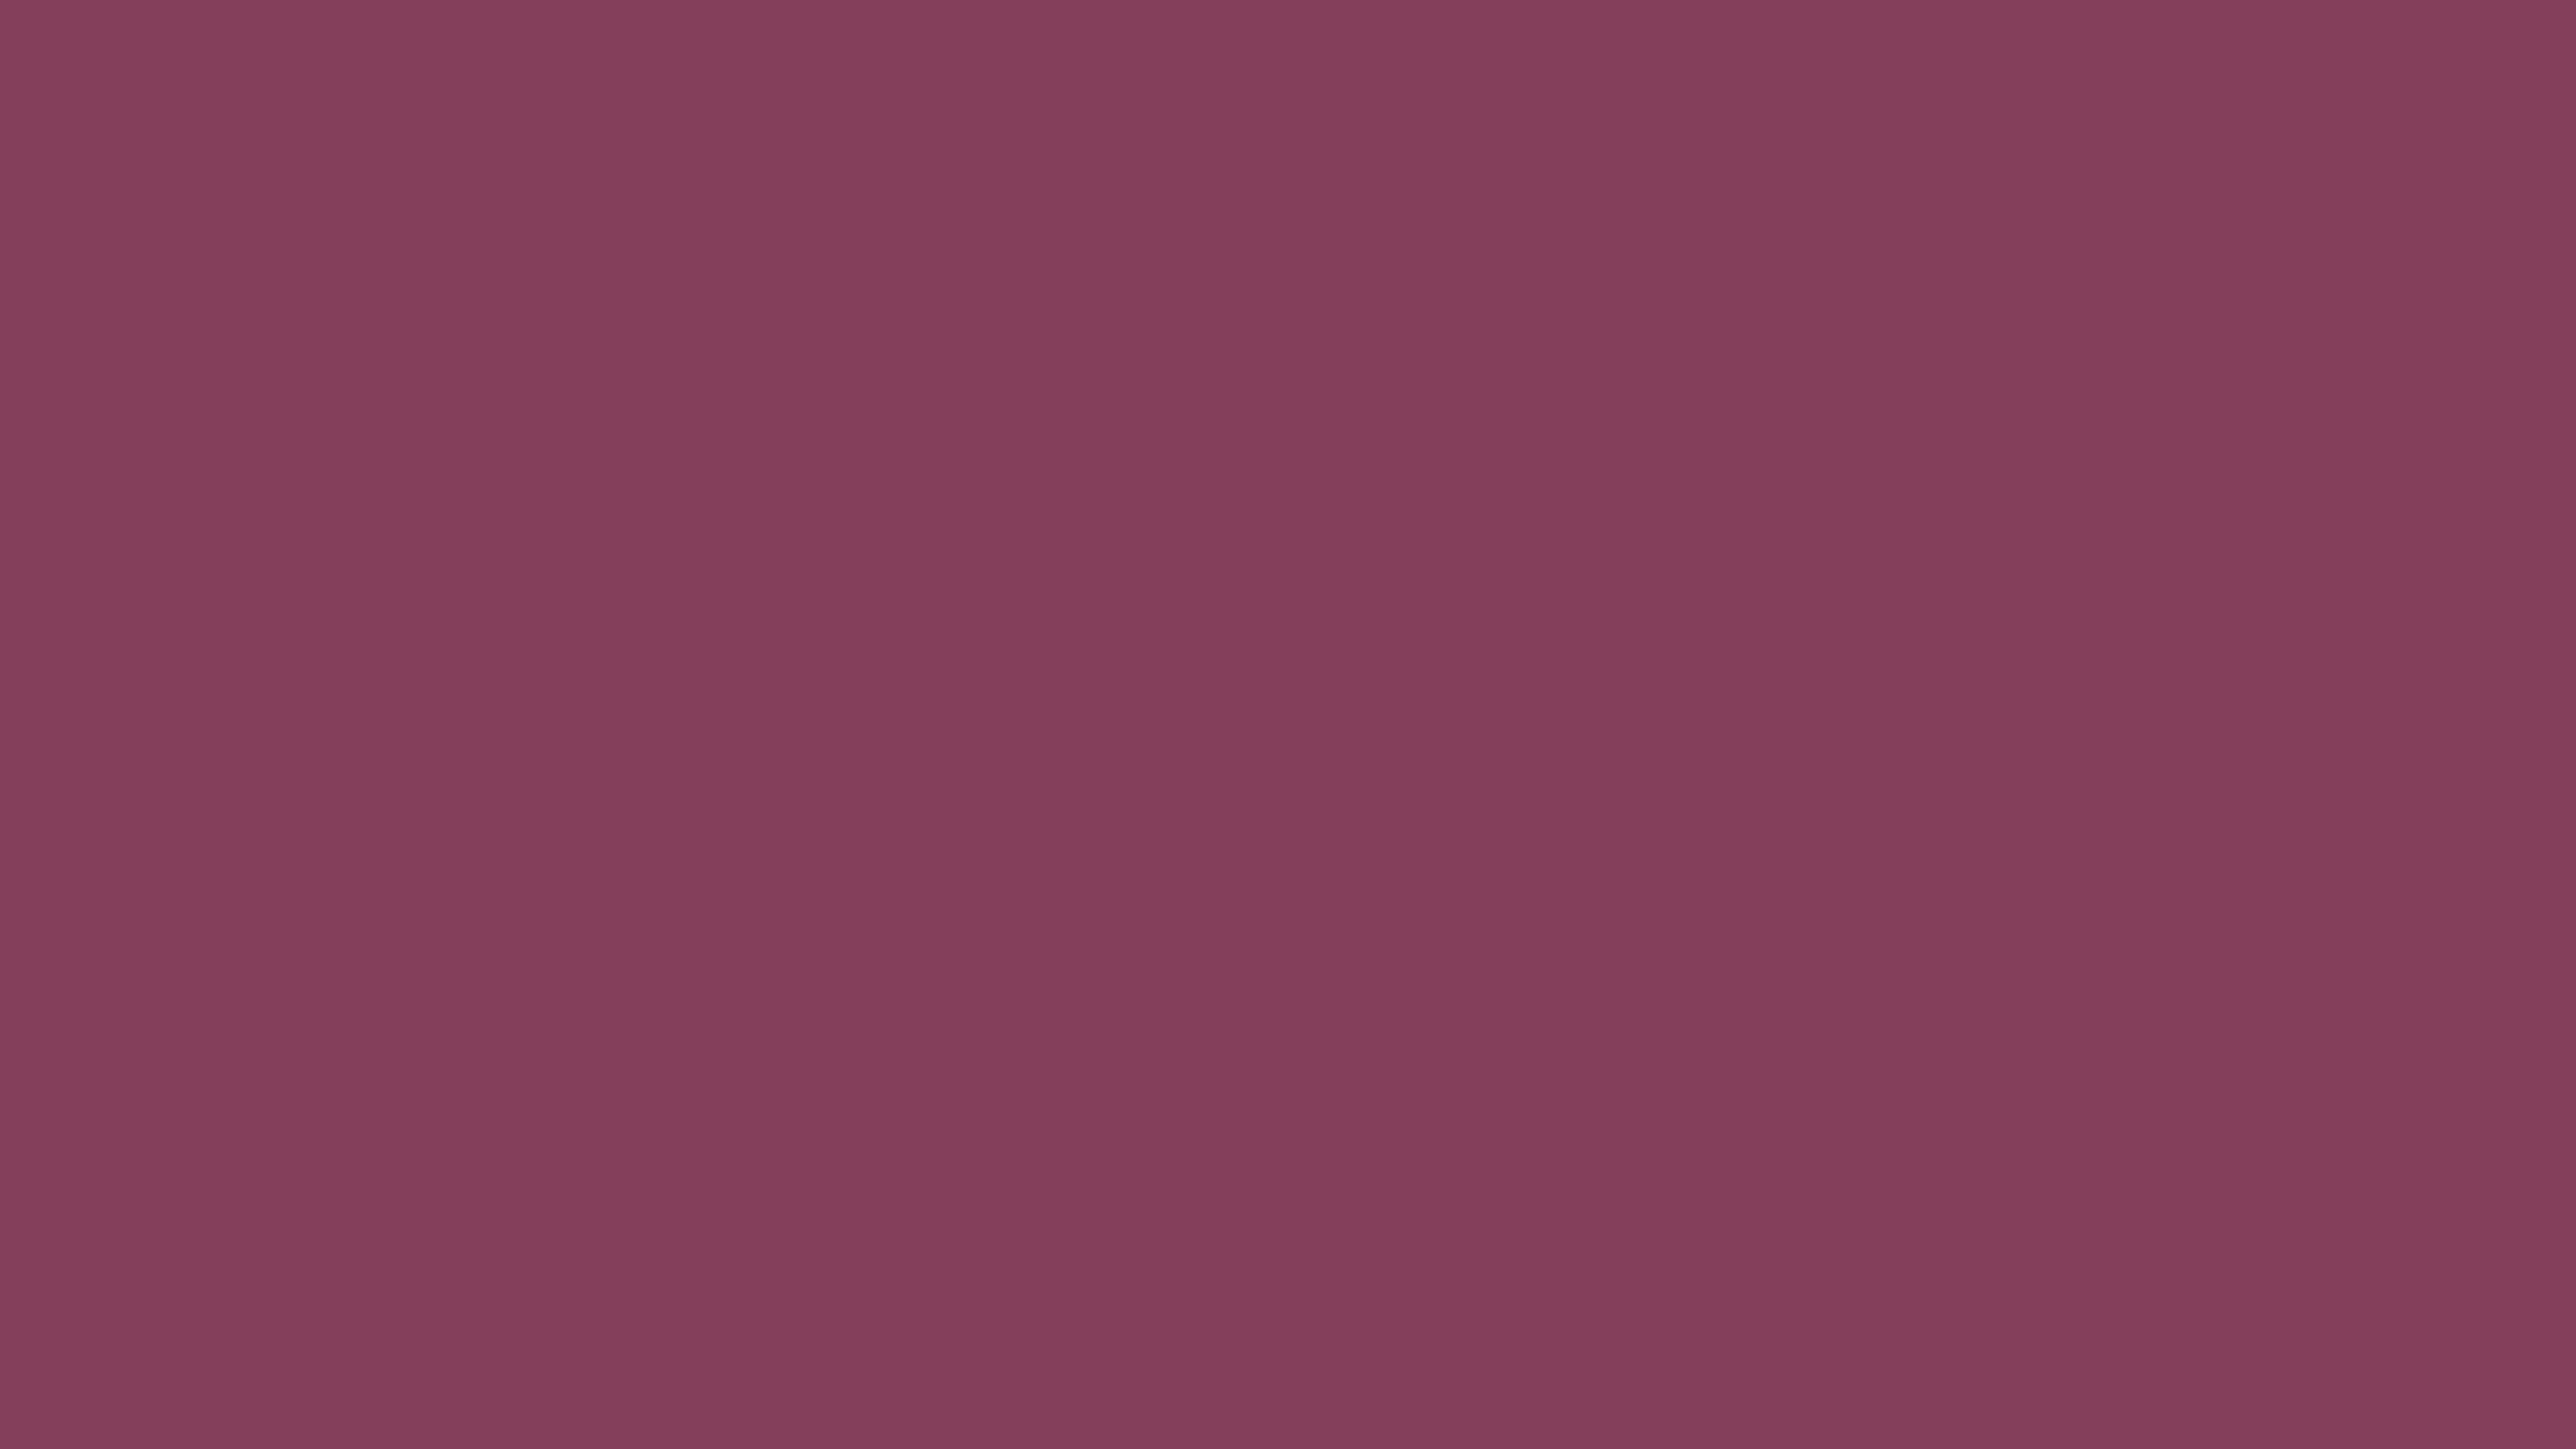 5120x2880 Deep Ruby Solid Color Background